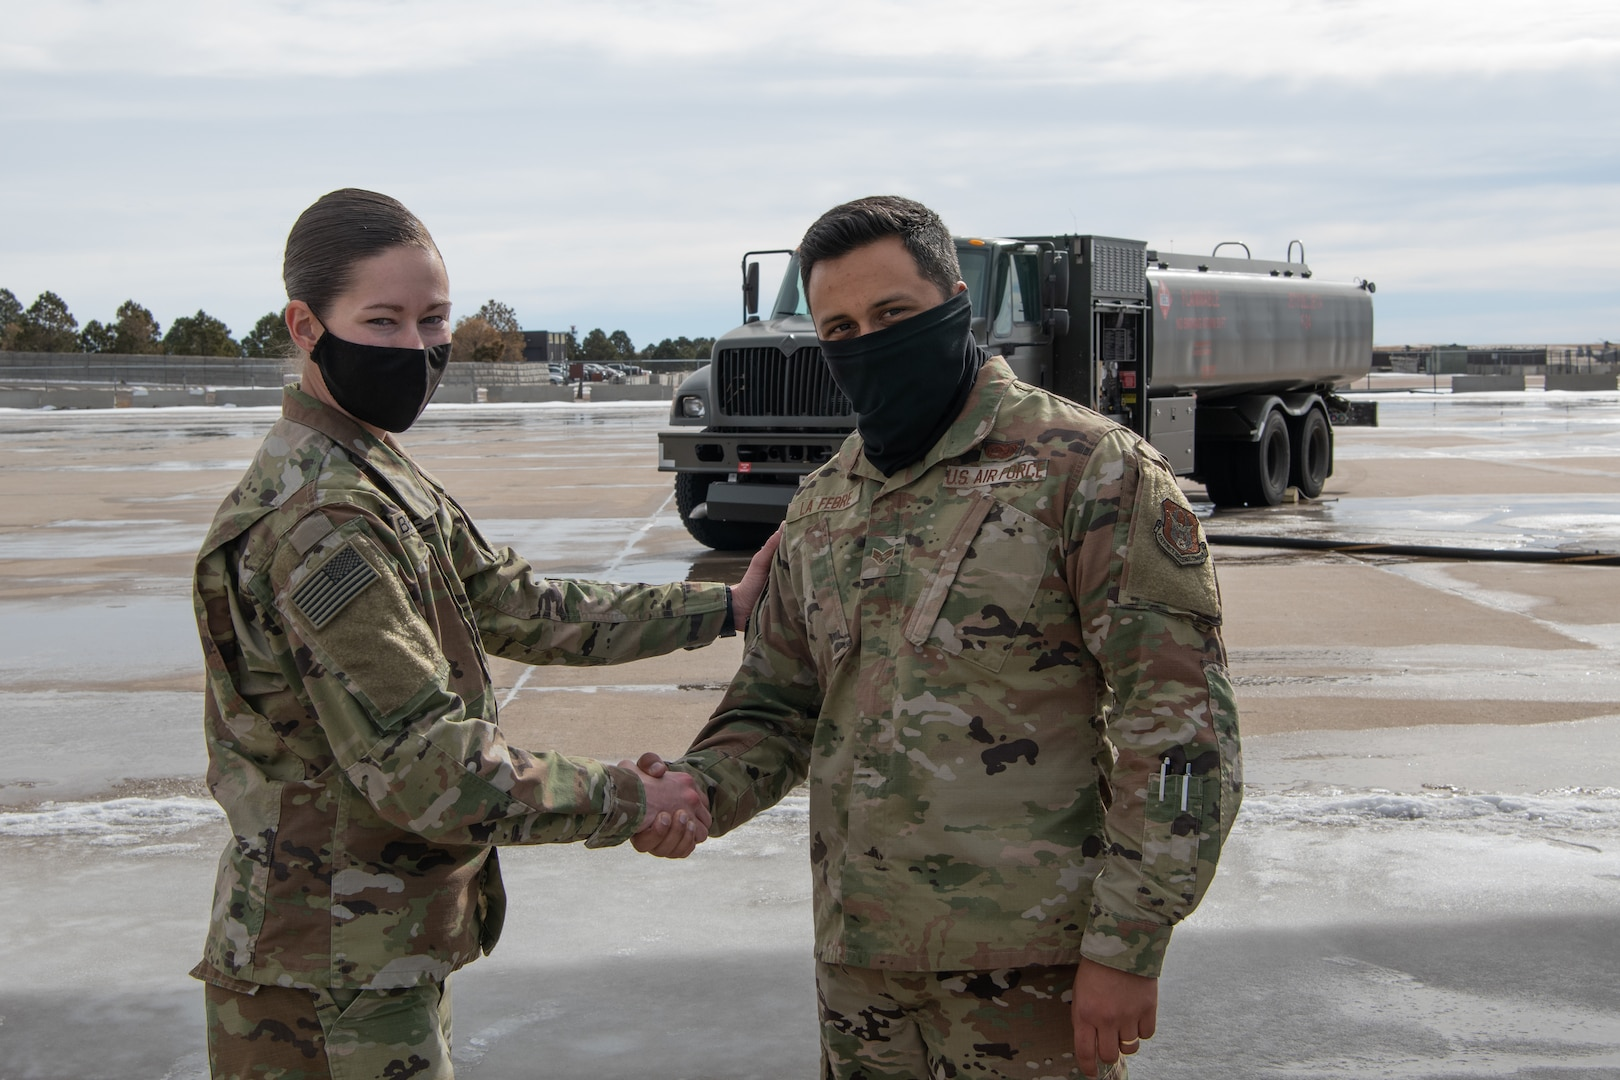 A soldiers shakes the hand of an Airman with a fuel truck in the background on the flight line.